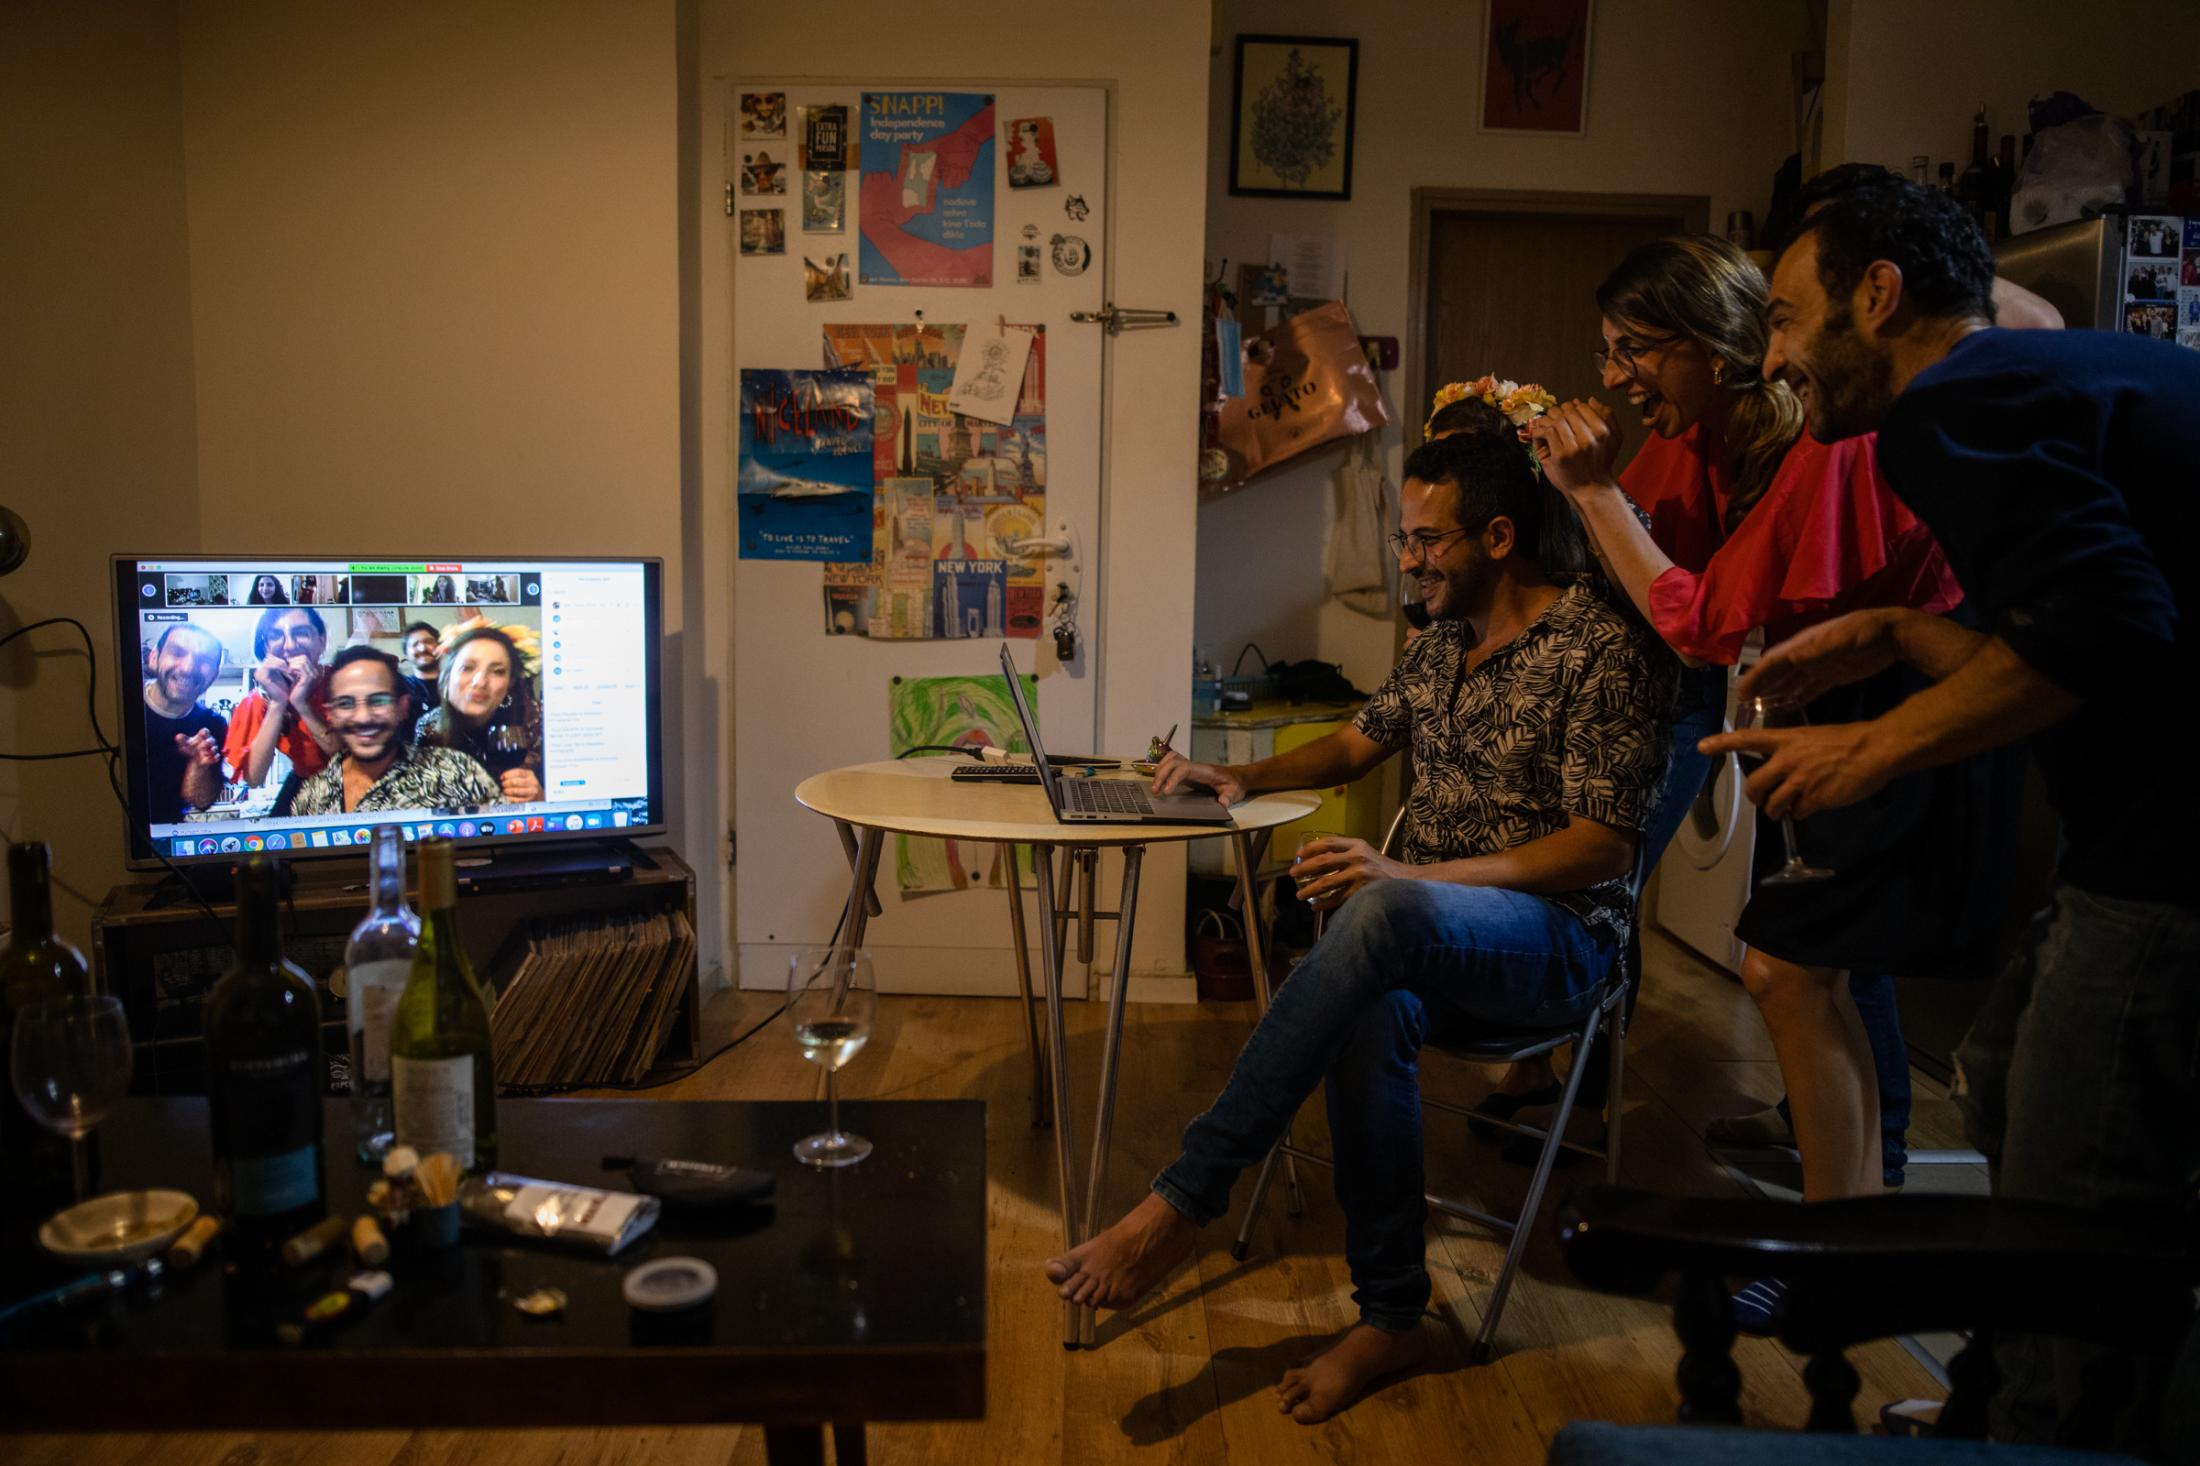 """Idan Teram, 35, Mor, 30, and Gabi, 38 (L-R) dance during an online party at home, in Tel Aviv, Israel, April 24, 2020. Since the lockdown due to Coronavirus, Idan co-founded a facebook group as a platform for virtual parties. """"We miss the hugs, we miss seeing new faces, the music sounds way better in real life. But there are a few benefits. It's pretty convenient, you're staying in your place, you're having a bottle of wine, you're sitting, listening to music and seeing people. And I see people who don't have access to parties in real life - if you live outside of Tel Aviv or if you have kids - these kind of parties can be an answer for people who enjoy music, who want to party, but who won't go to a club. So we actually put the party in your place and have everybody participating - and it works."""" (Idan Teram, 35)"""